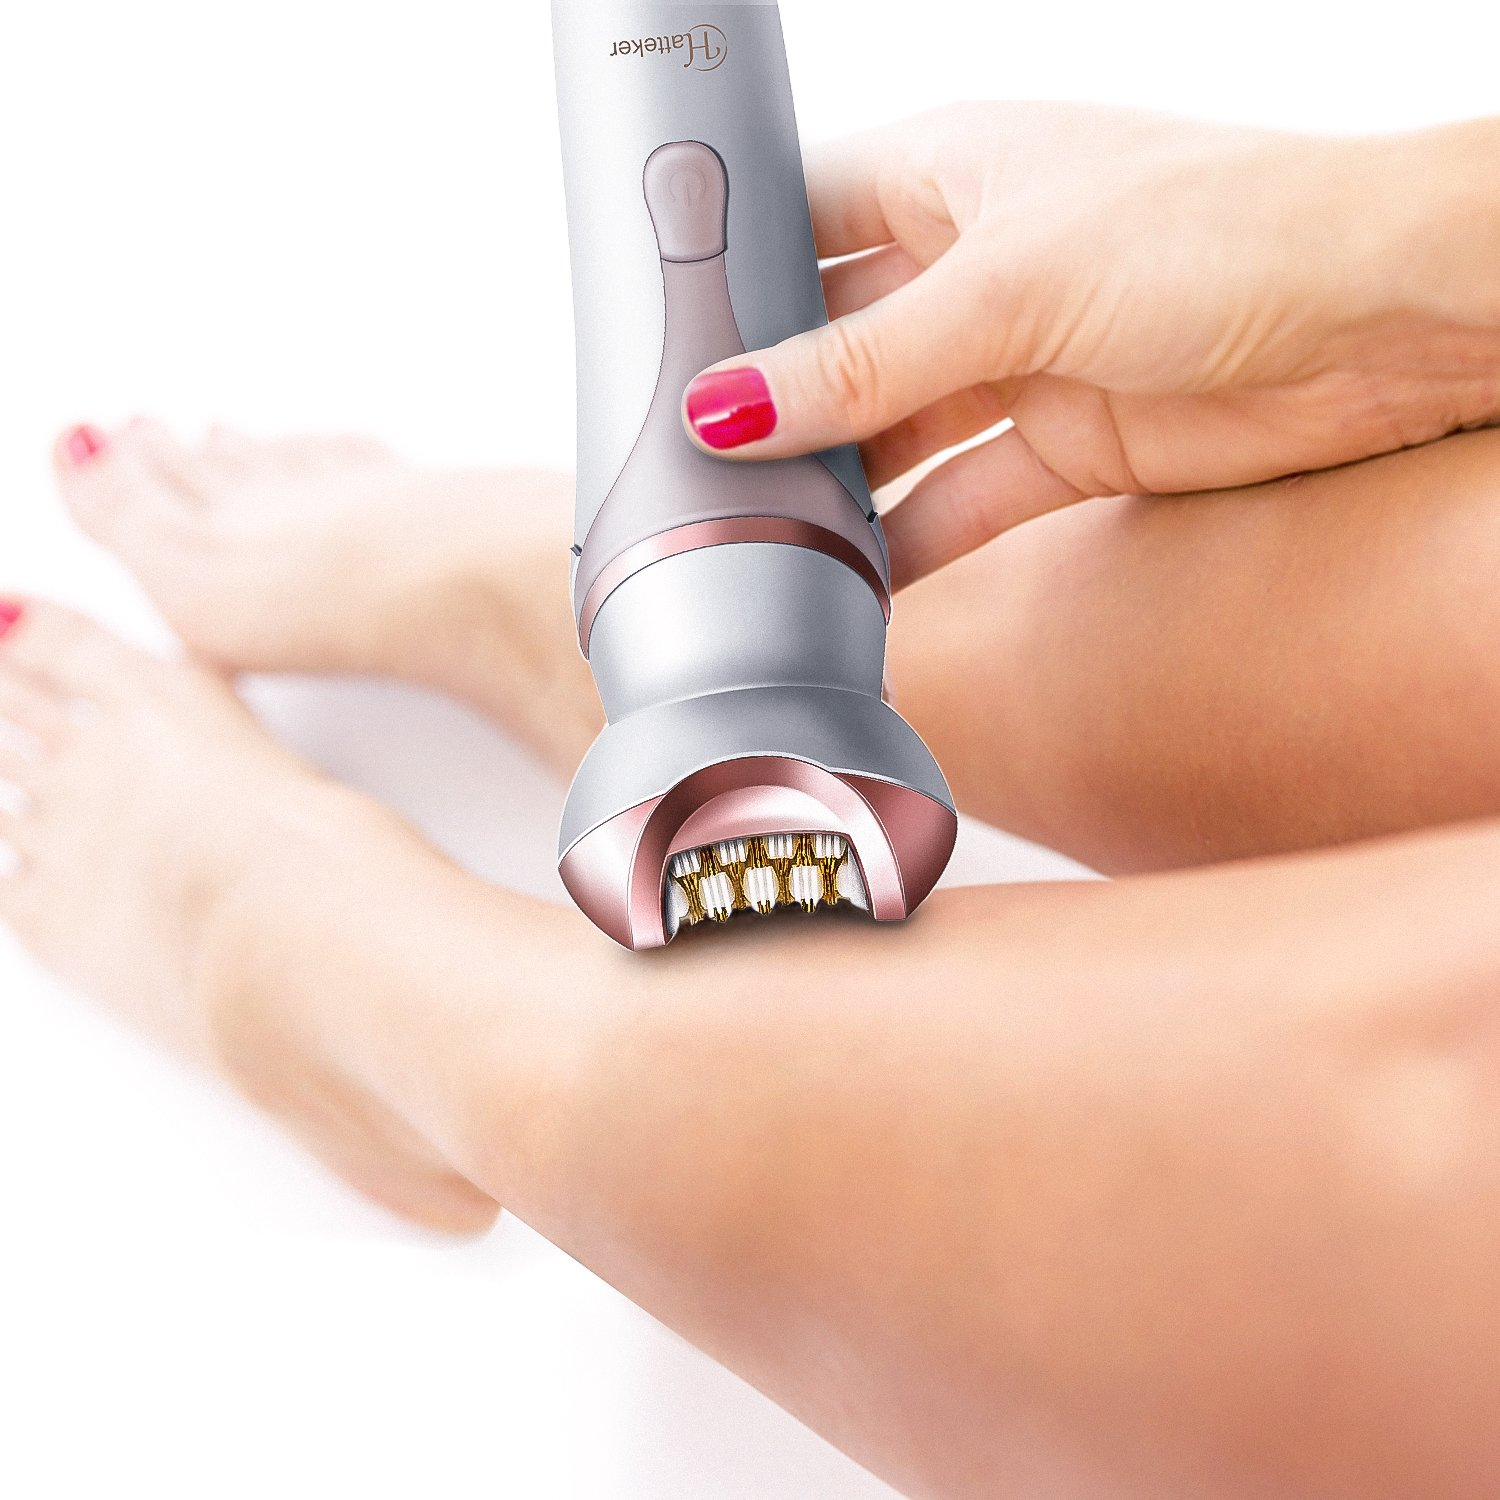 Hatteker Women's Hair Removal Cordless Rechargeable Ladies Electric Shaver Wet & Dry Hair Epilator for Legs Body Hair Bikini Trimmer with Facial Cleansing Brush Body Massager 4 in 1 Set by Hatteker (Image #6)